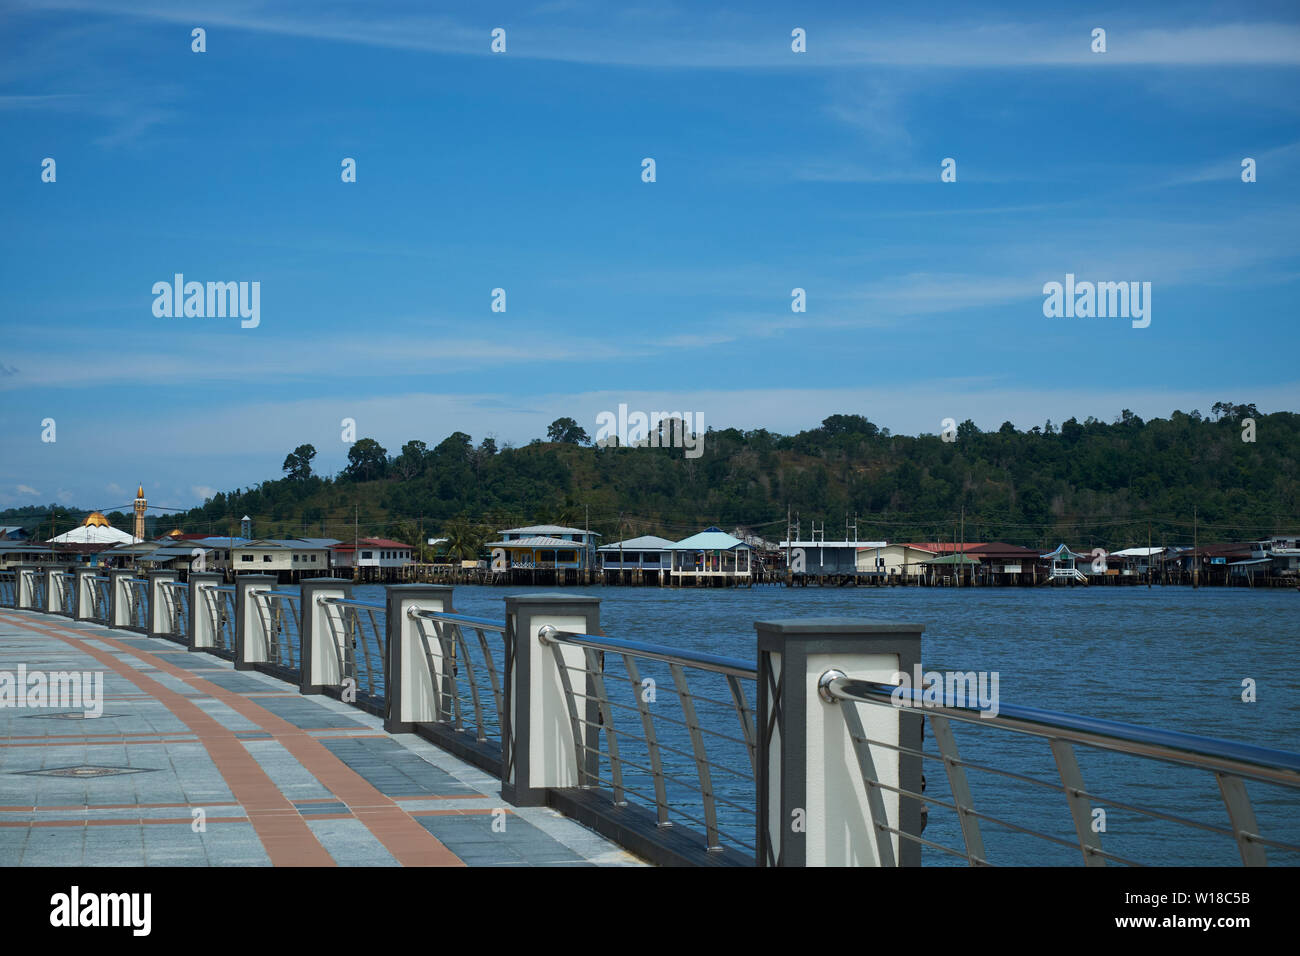 A look at water village Kampong Ayer from across the Brunei river at the new riverside promenade in downtown Bandar Seri Begawan,Brunei. - Stock Image